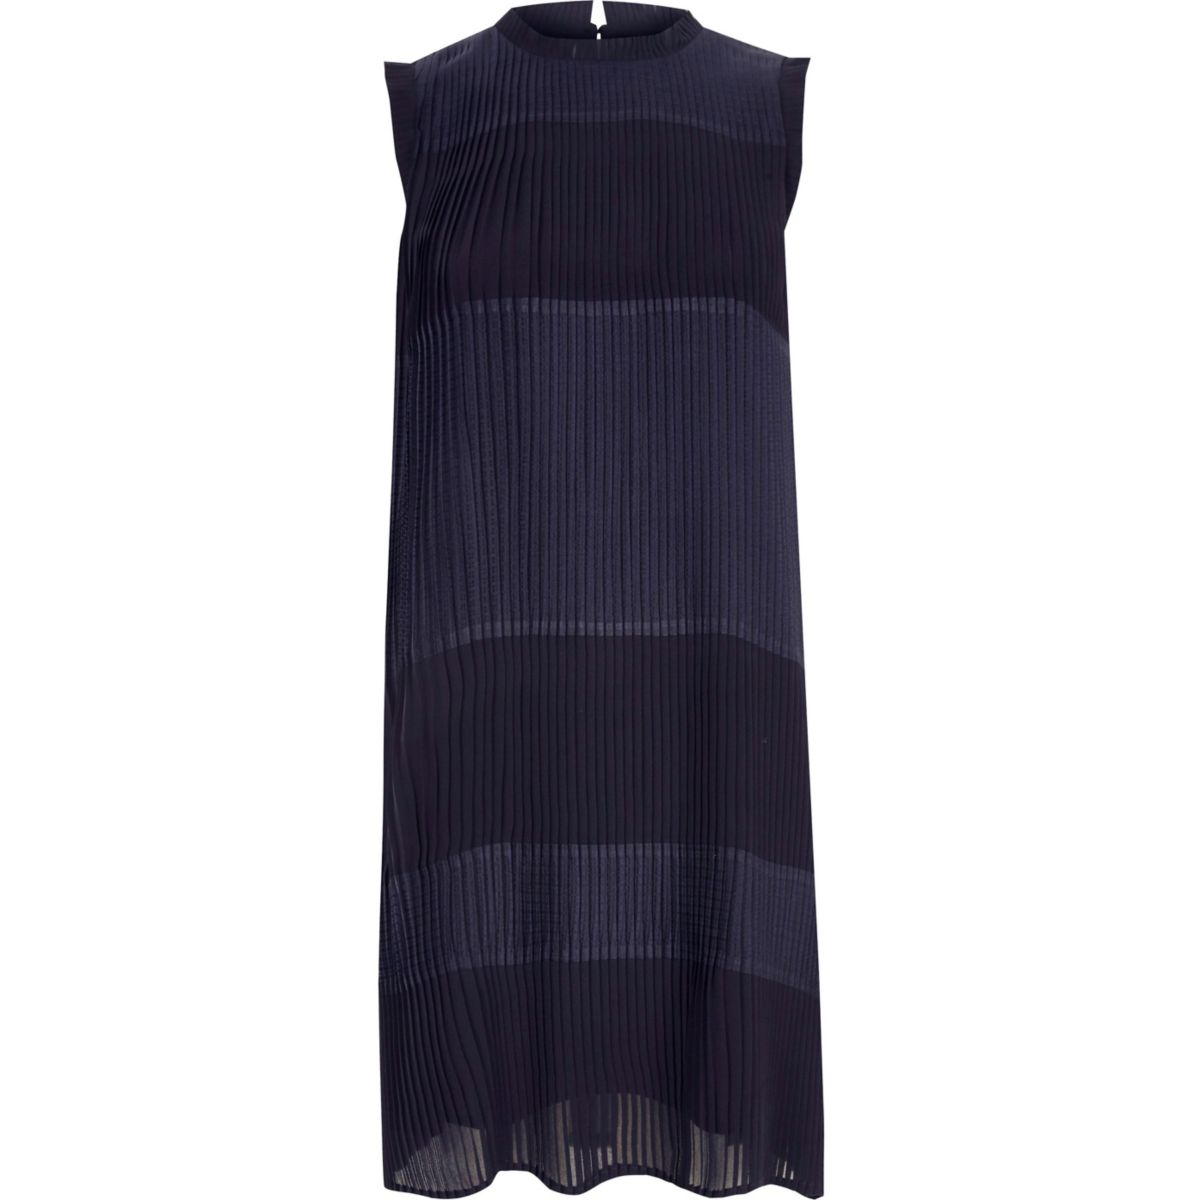 Navy sleeveless pleated swing dress